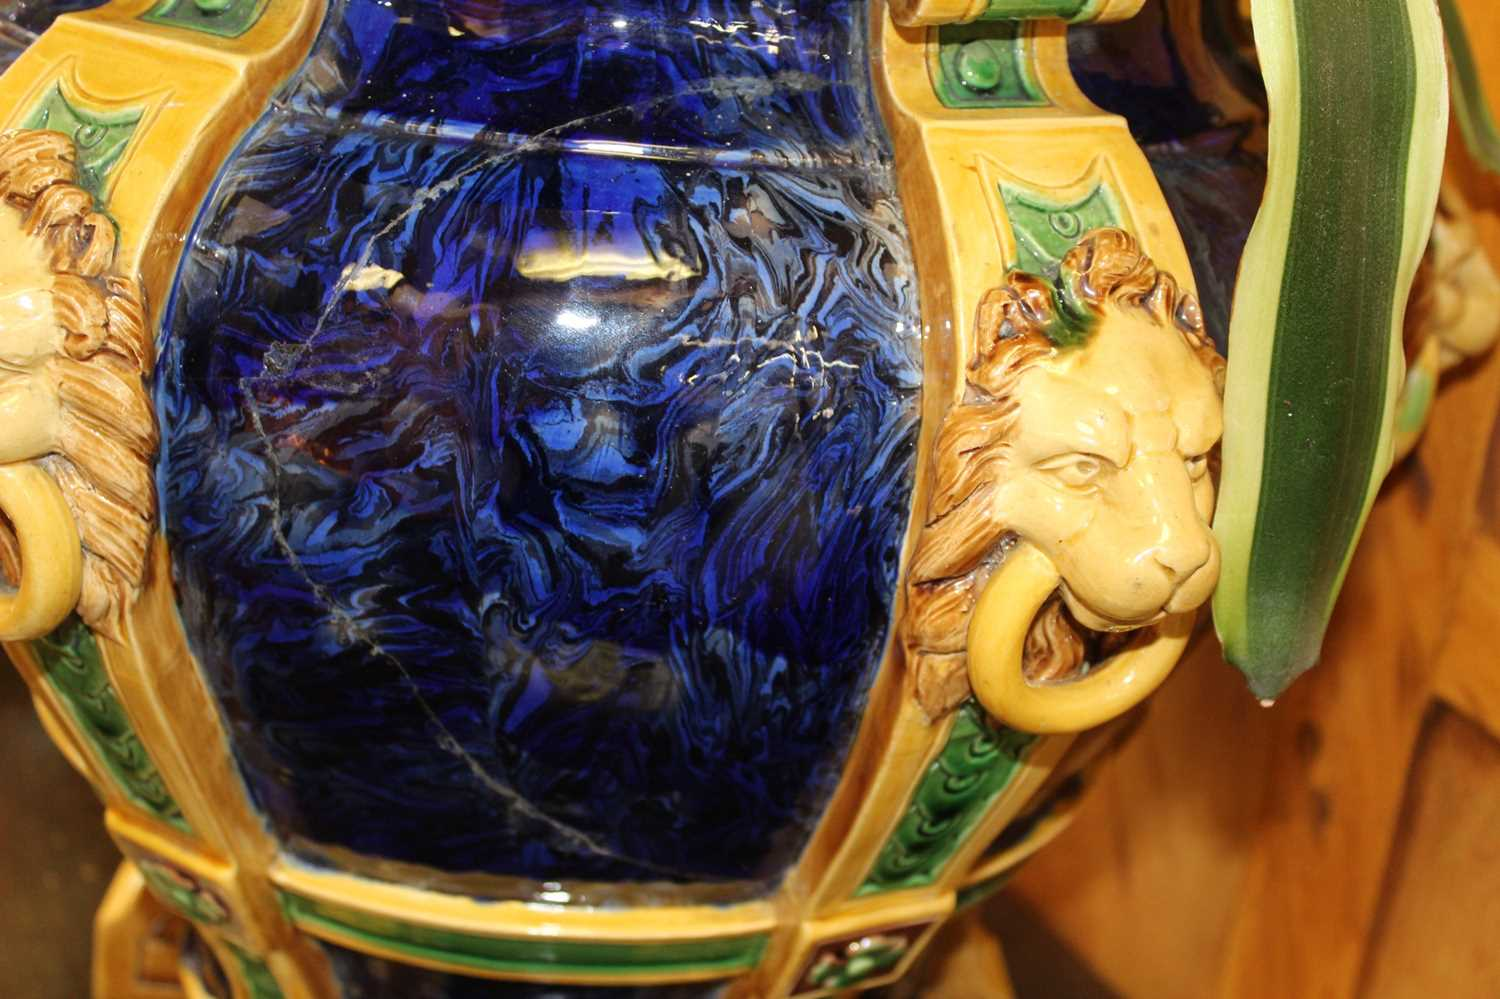 Large 19th century English majolica jardinière, decorated in relief with lion masks and paw feet on - Image 2 of 5